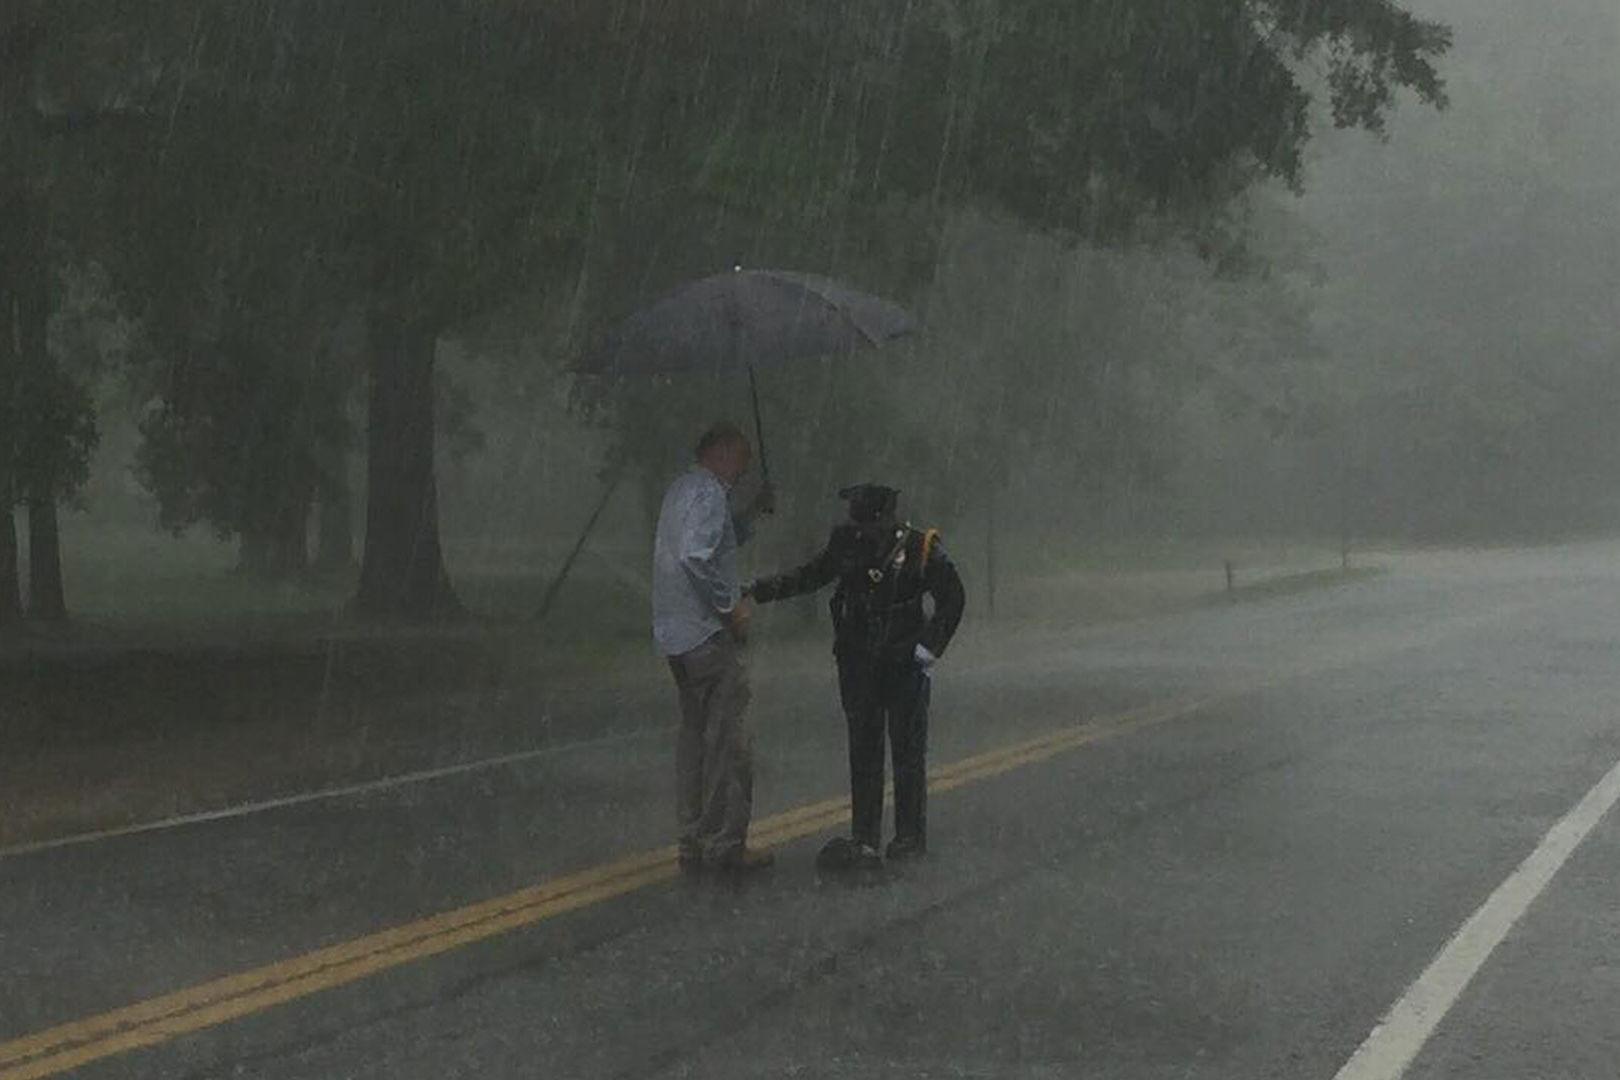 The Reason This Police Officer Is Standing in the Middle of the Road in the Rain Will Make Your Day